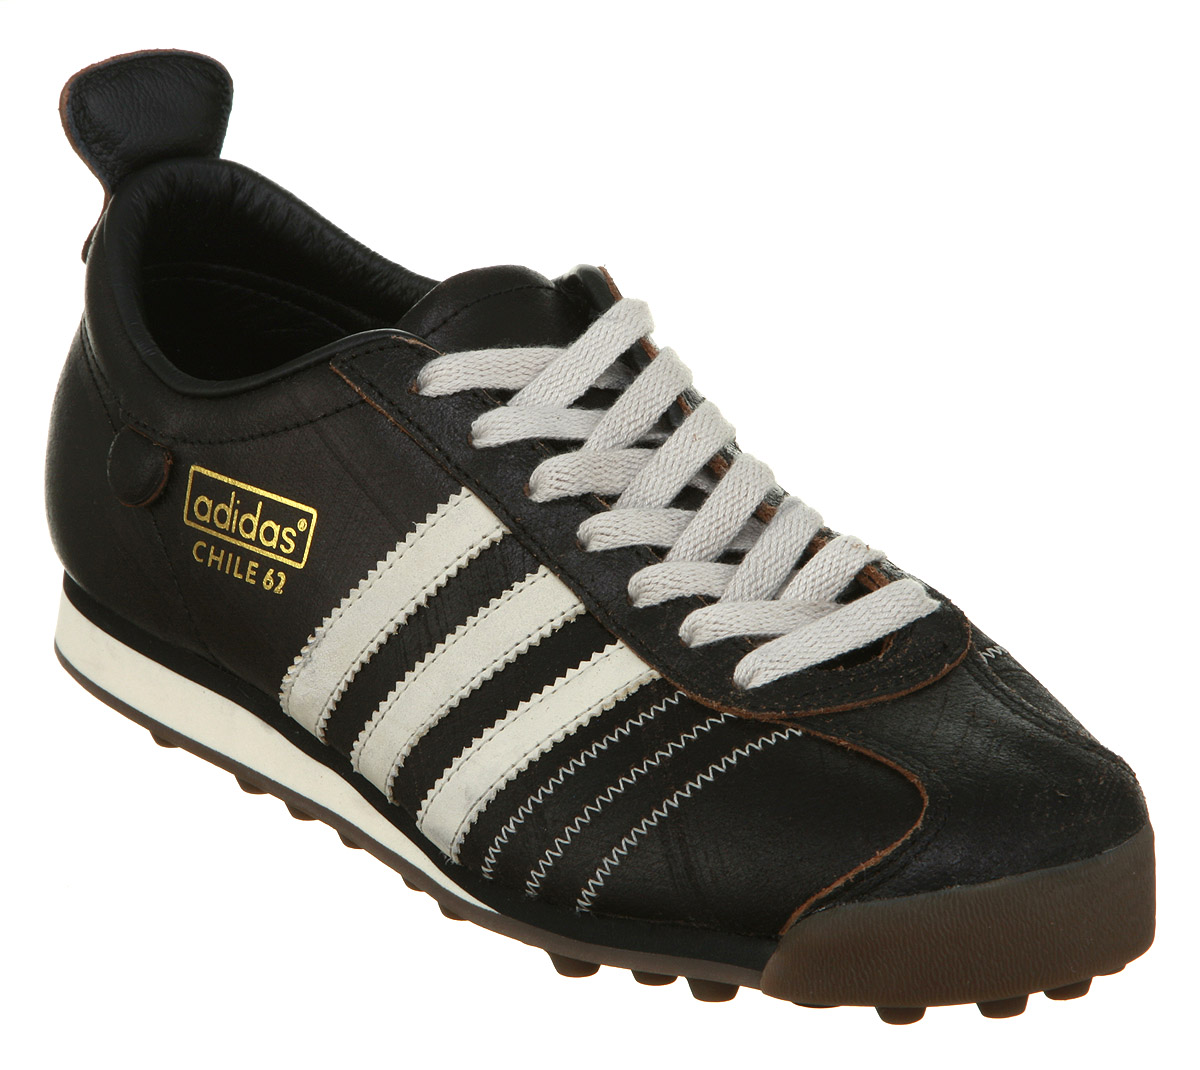 Adidas Chile 62 image is loading adidas-chile-62-black-bone-leather-trainers MTUVIKR